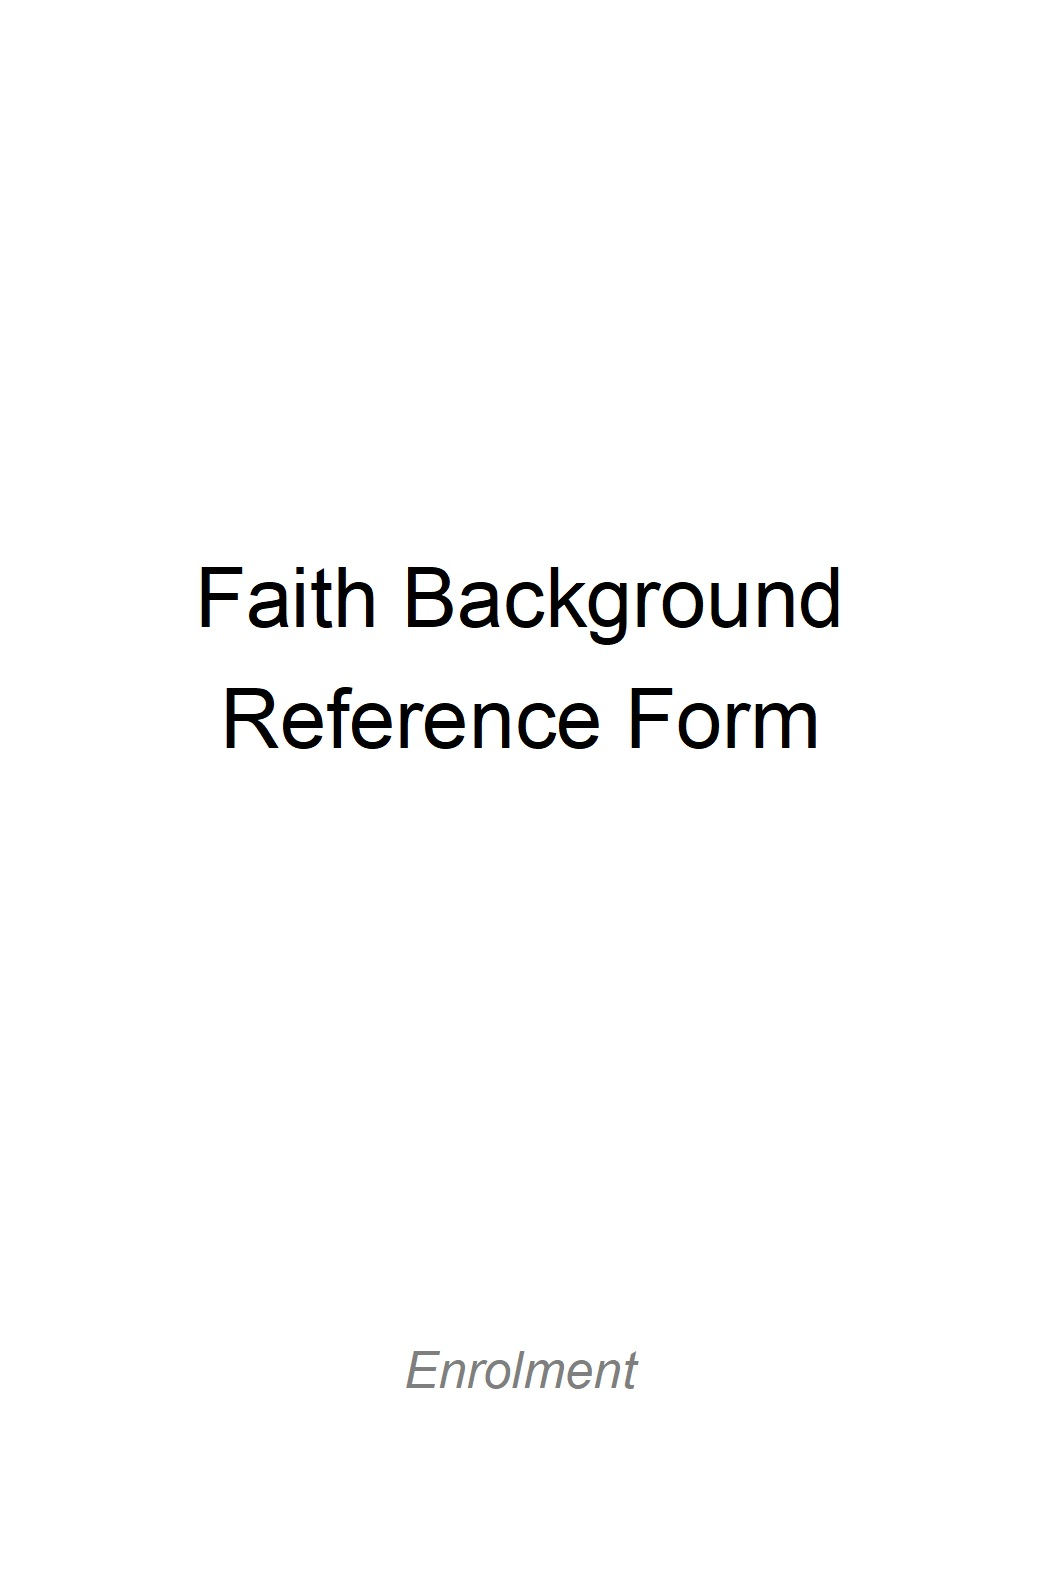 Faith Background Reference Form